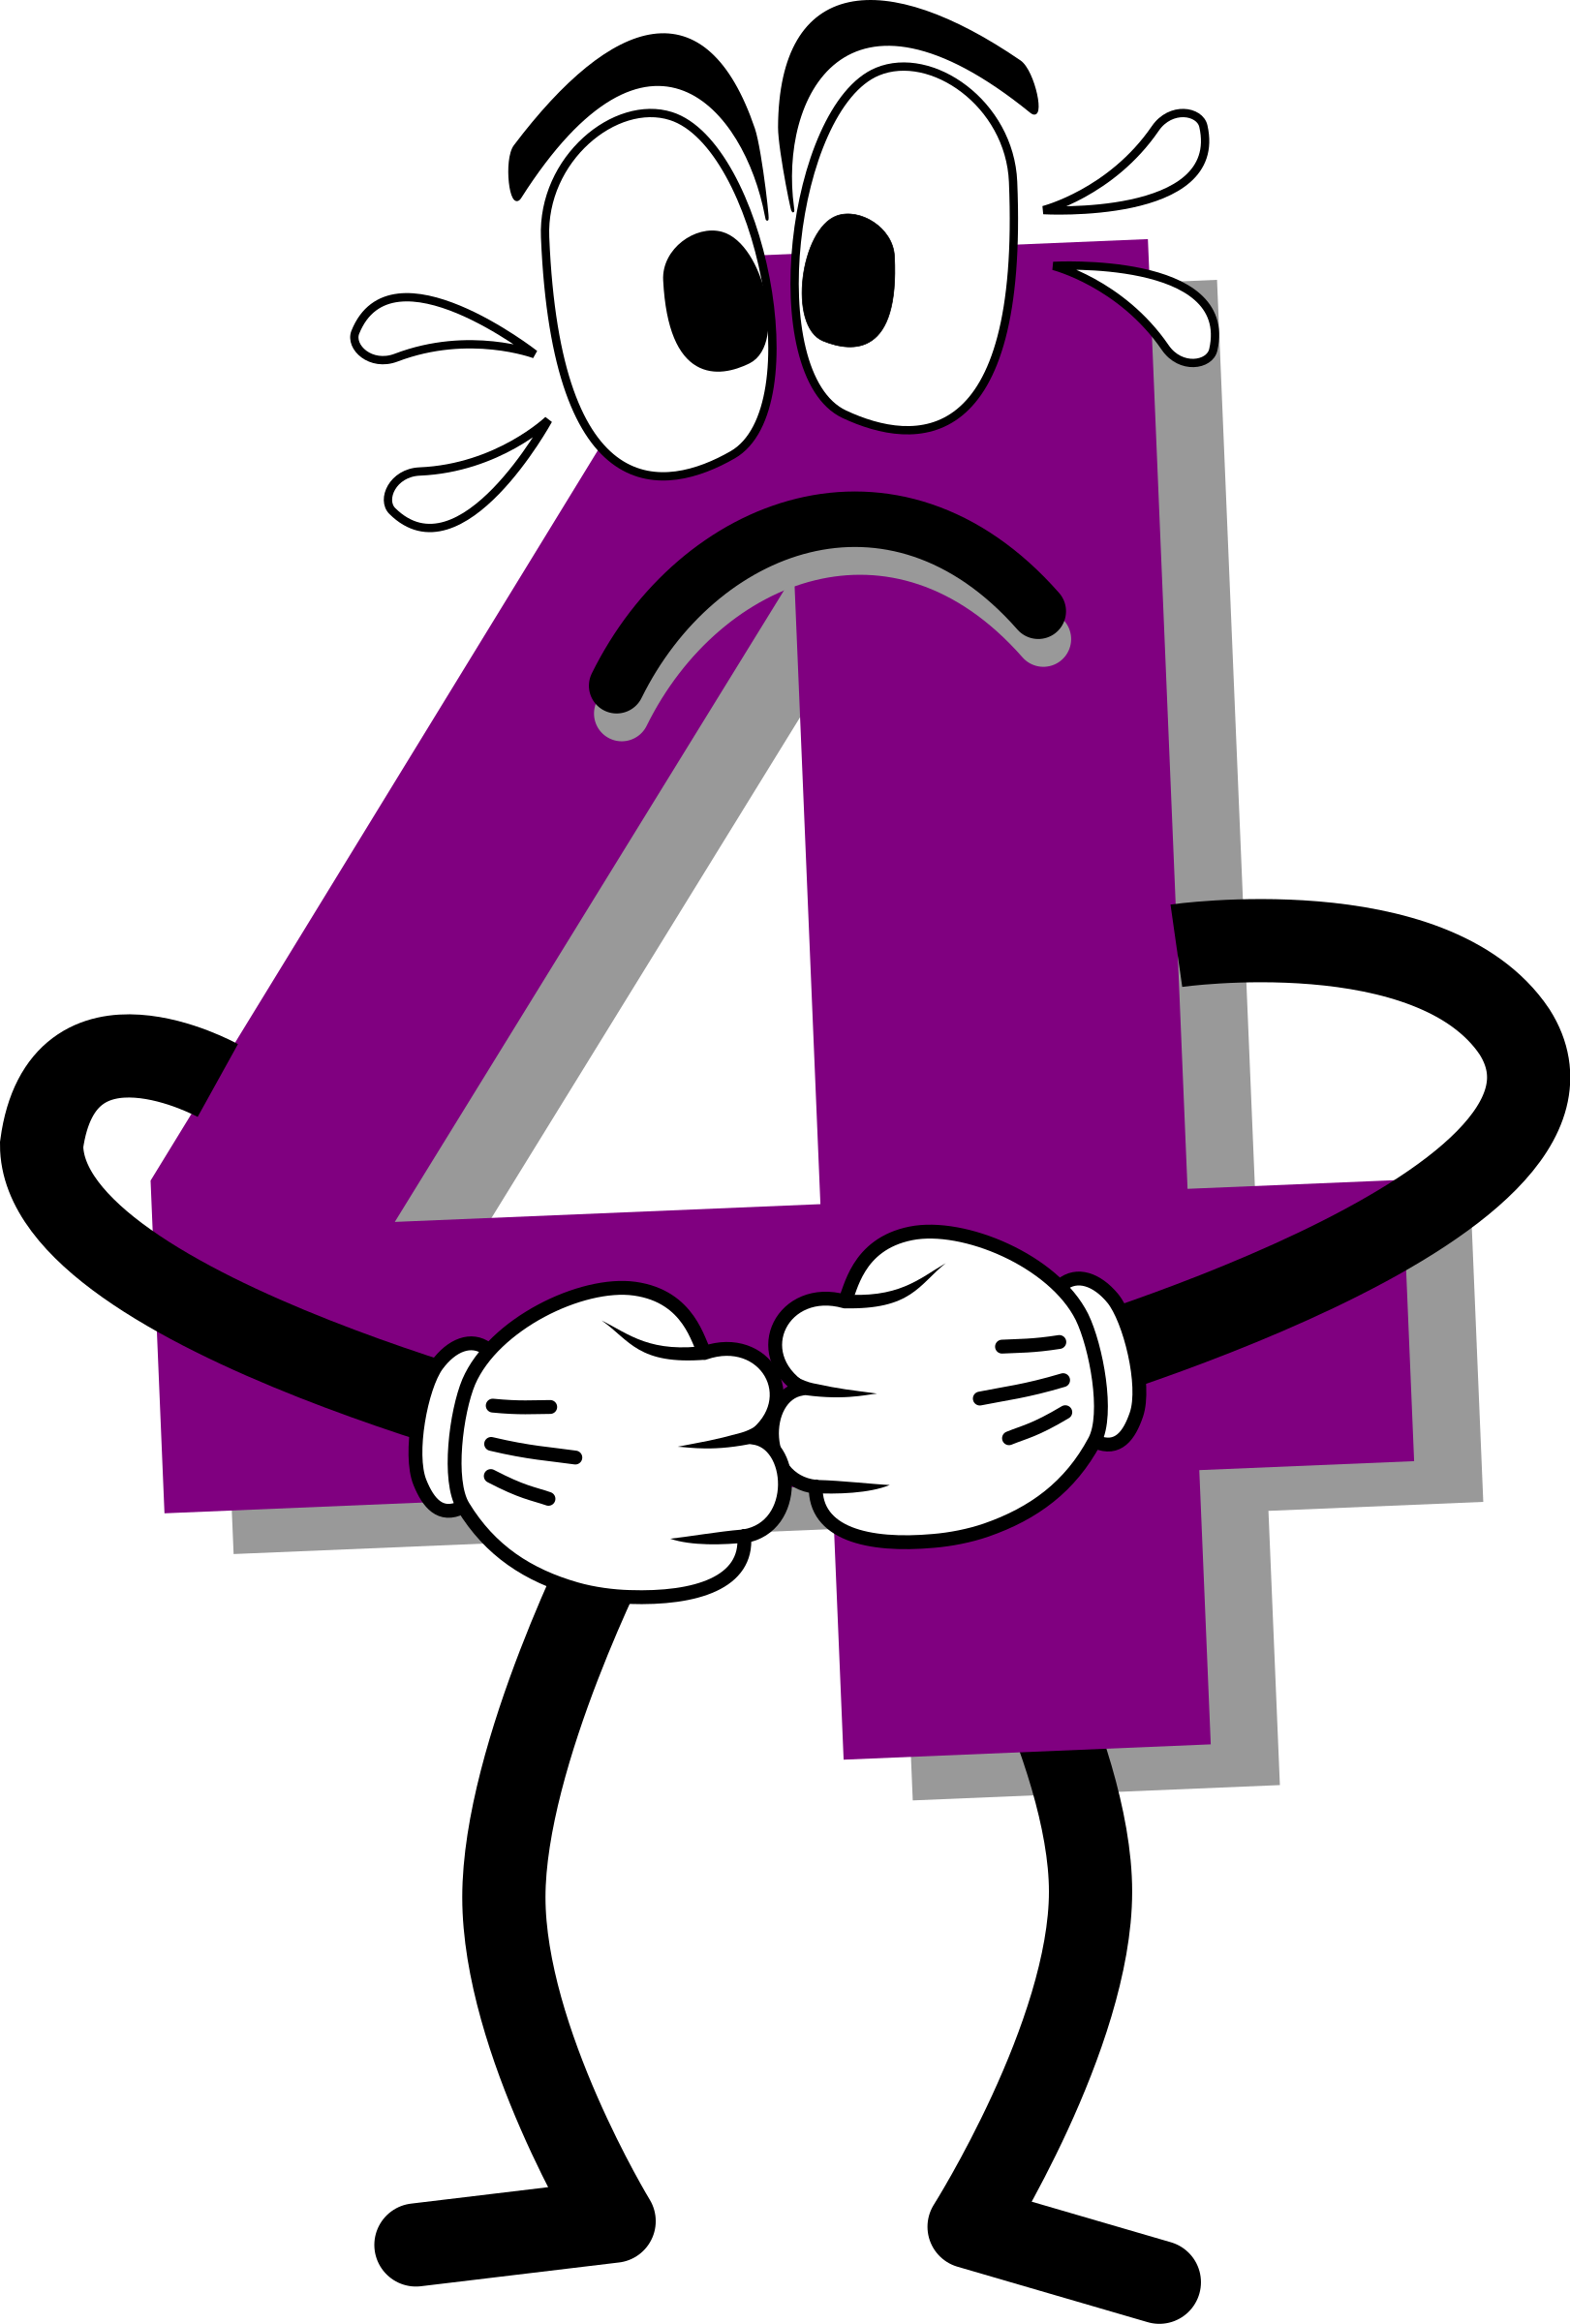 4 clipart purple. Scared big image png